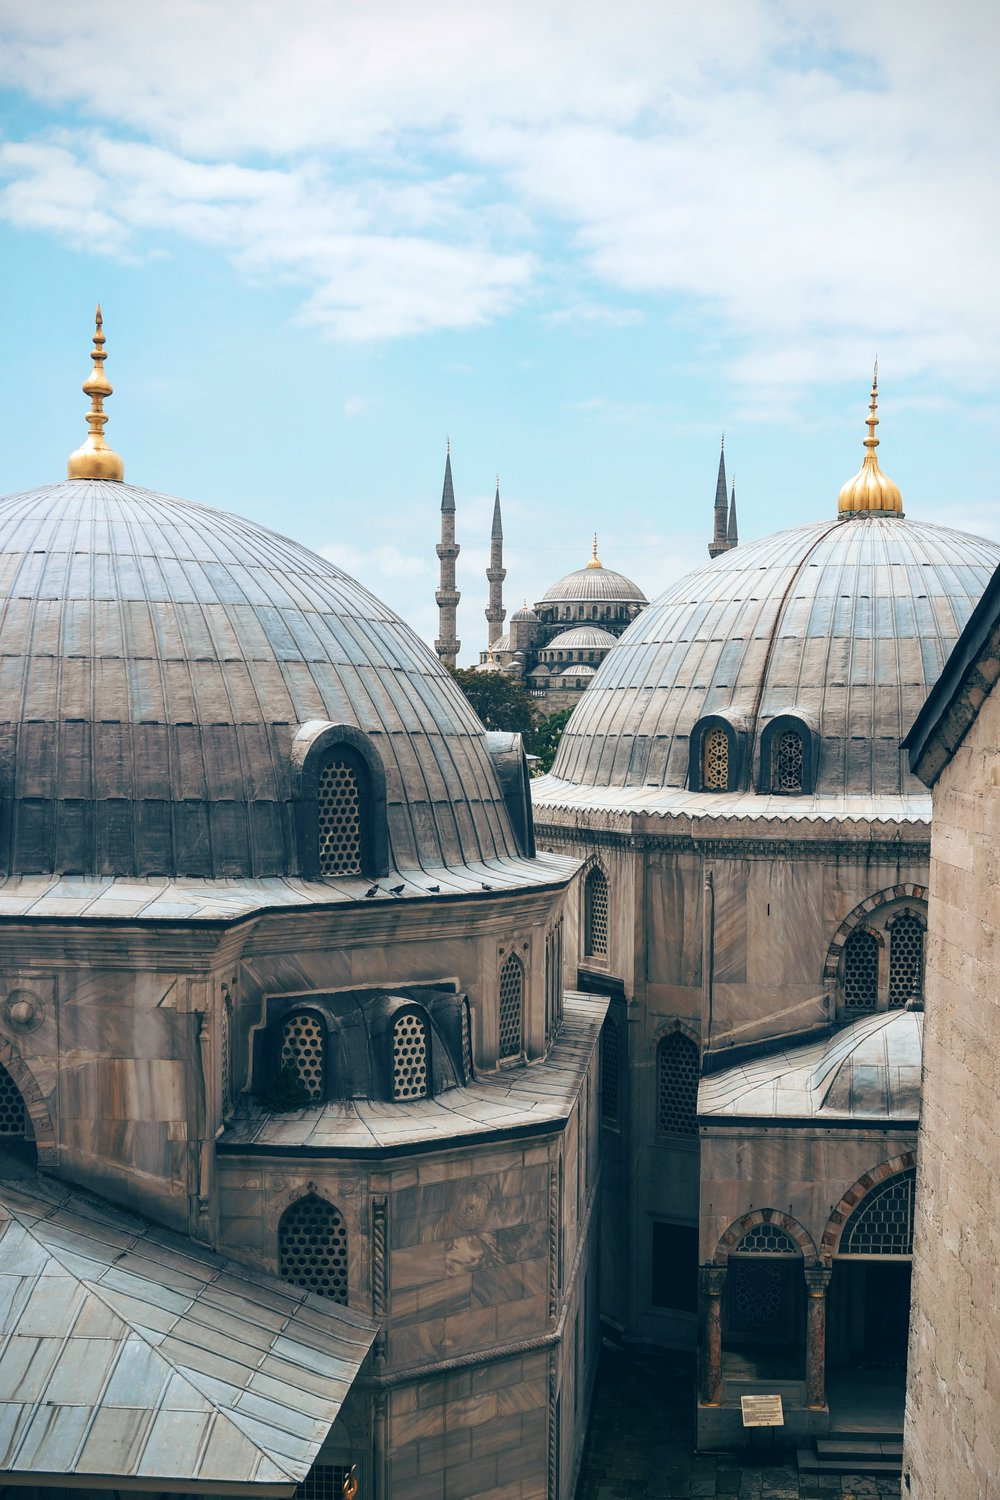 Insiders Guide To Istanbul Travel Guide 4.jpg